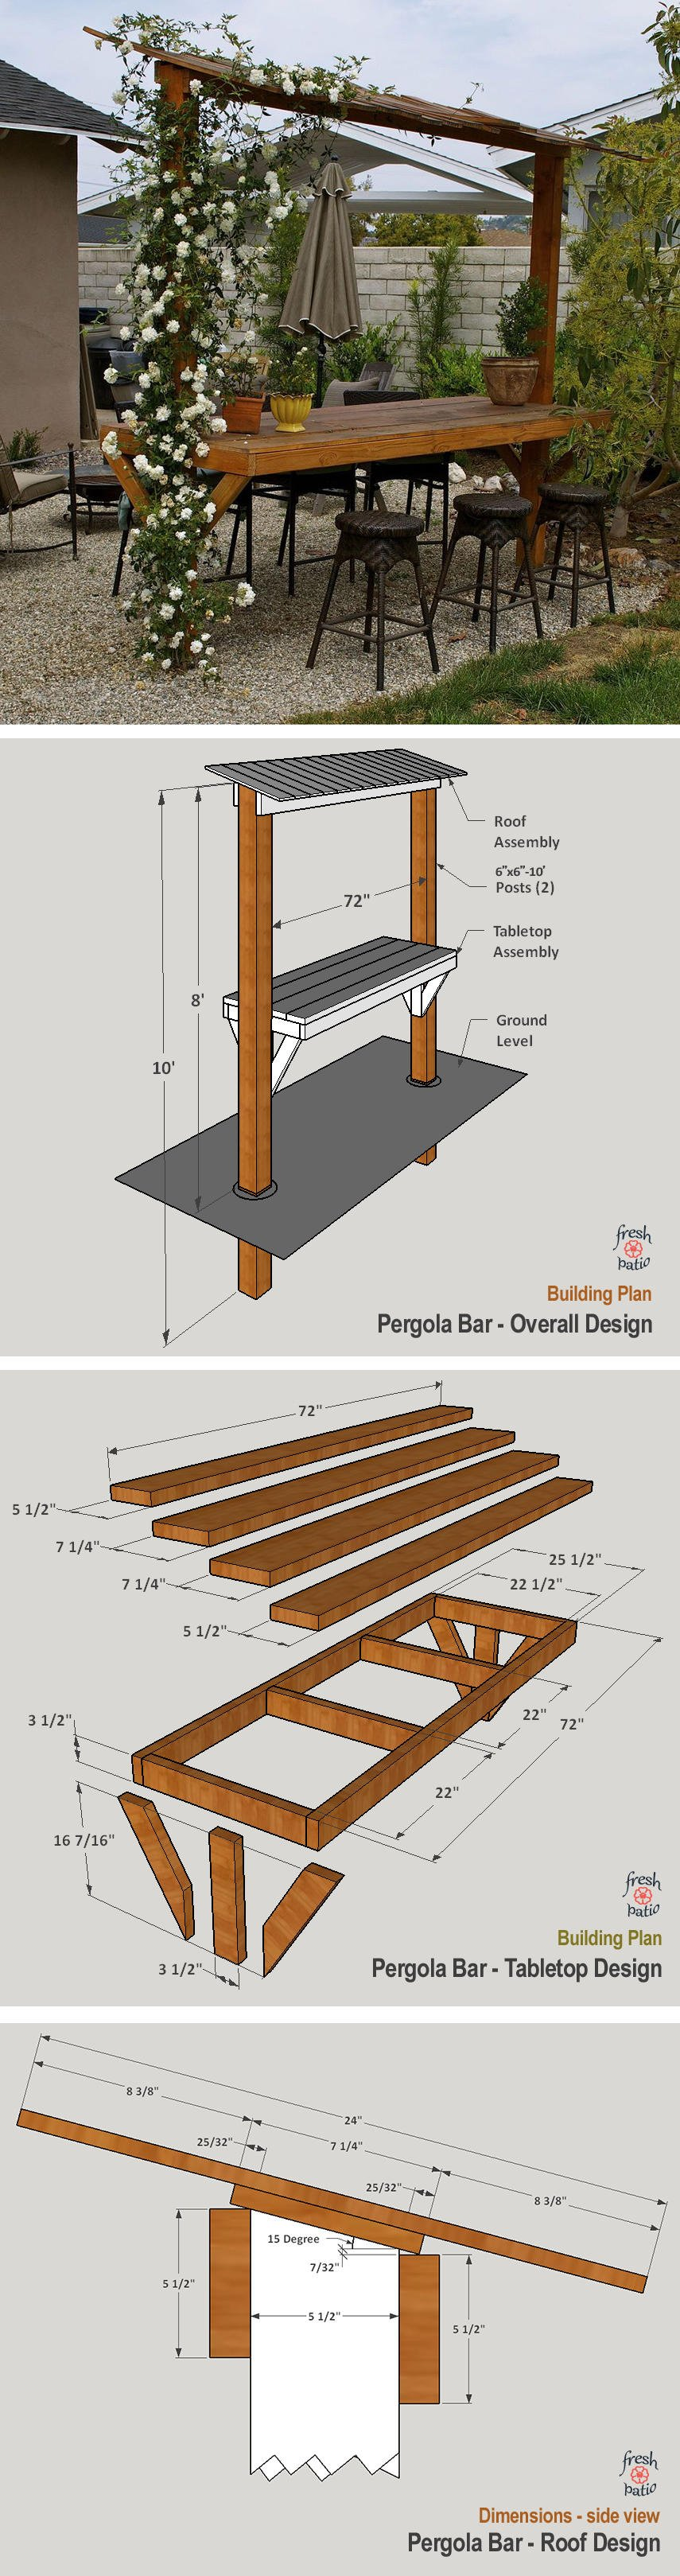 An outdoor pergola bar design - a complete DIY building guide